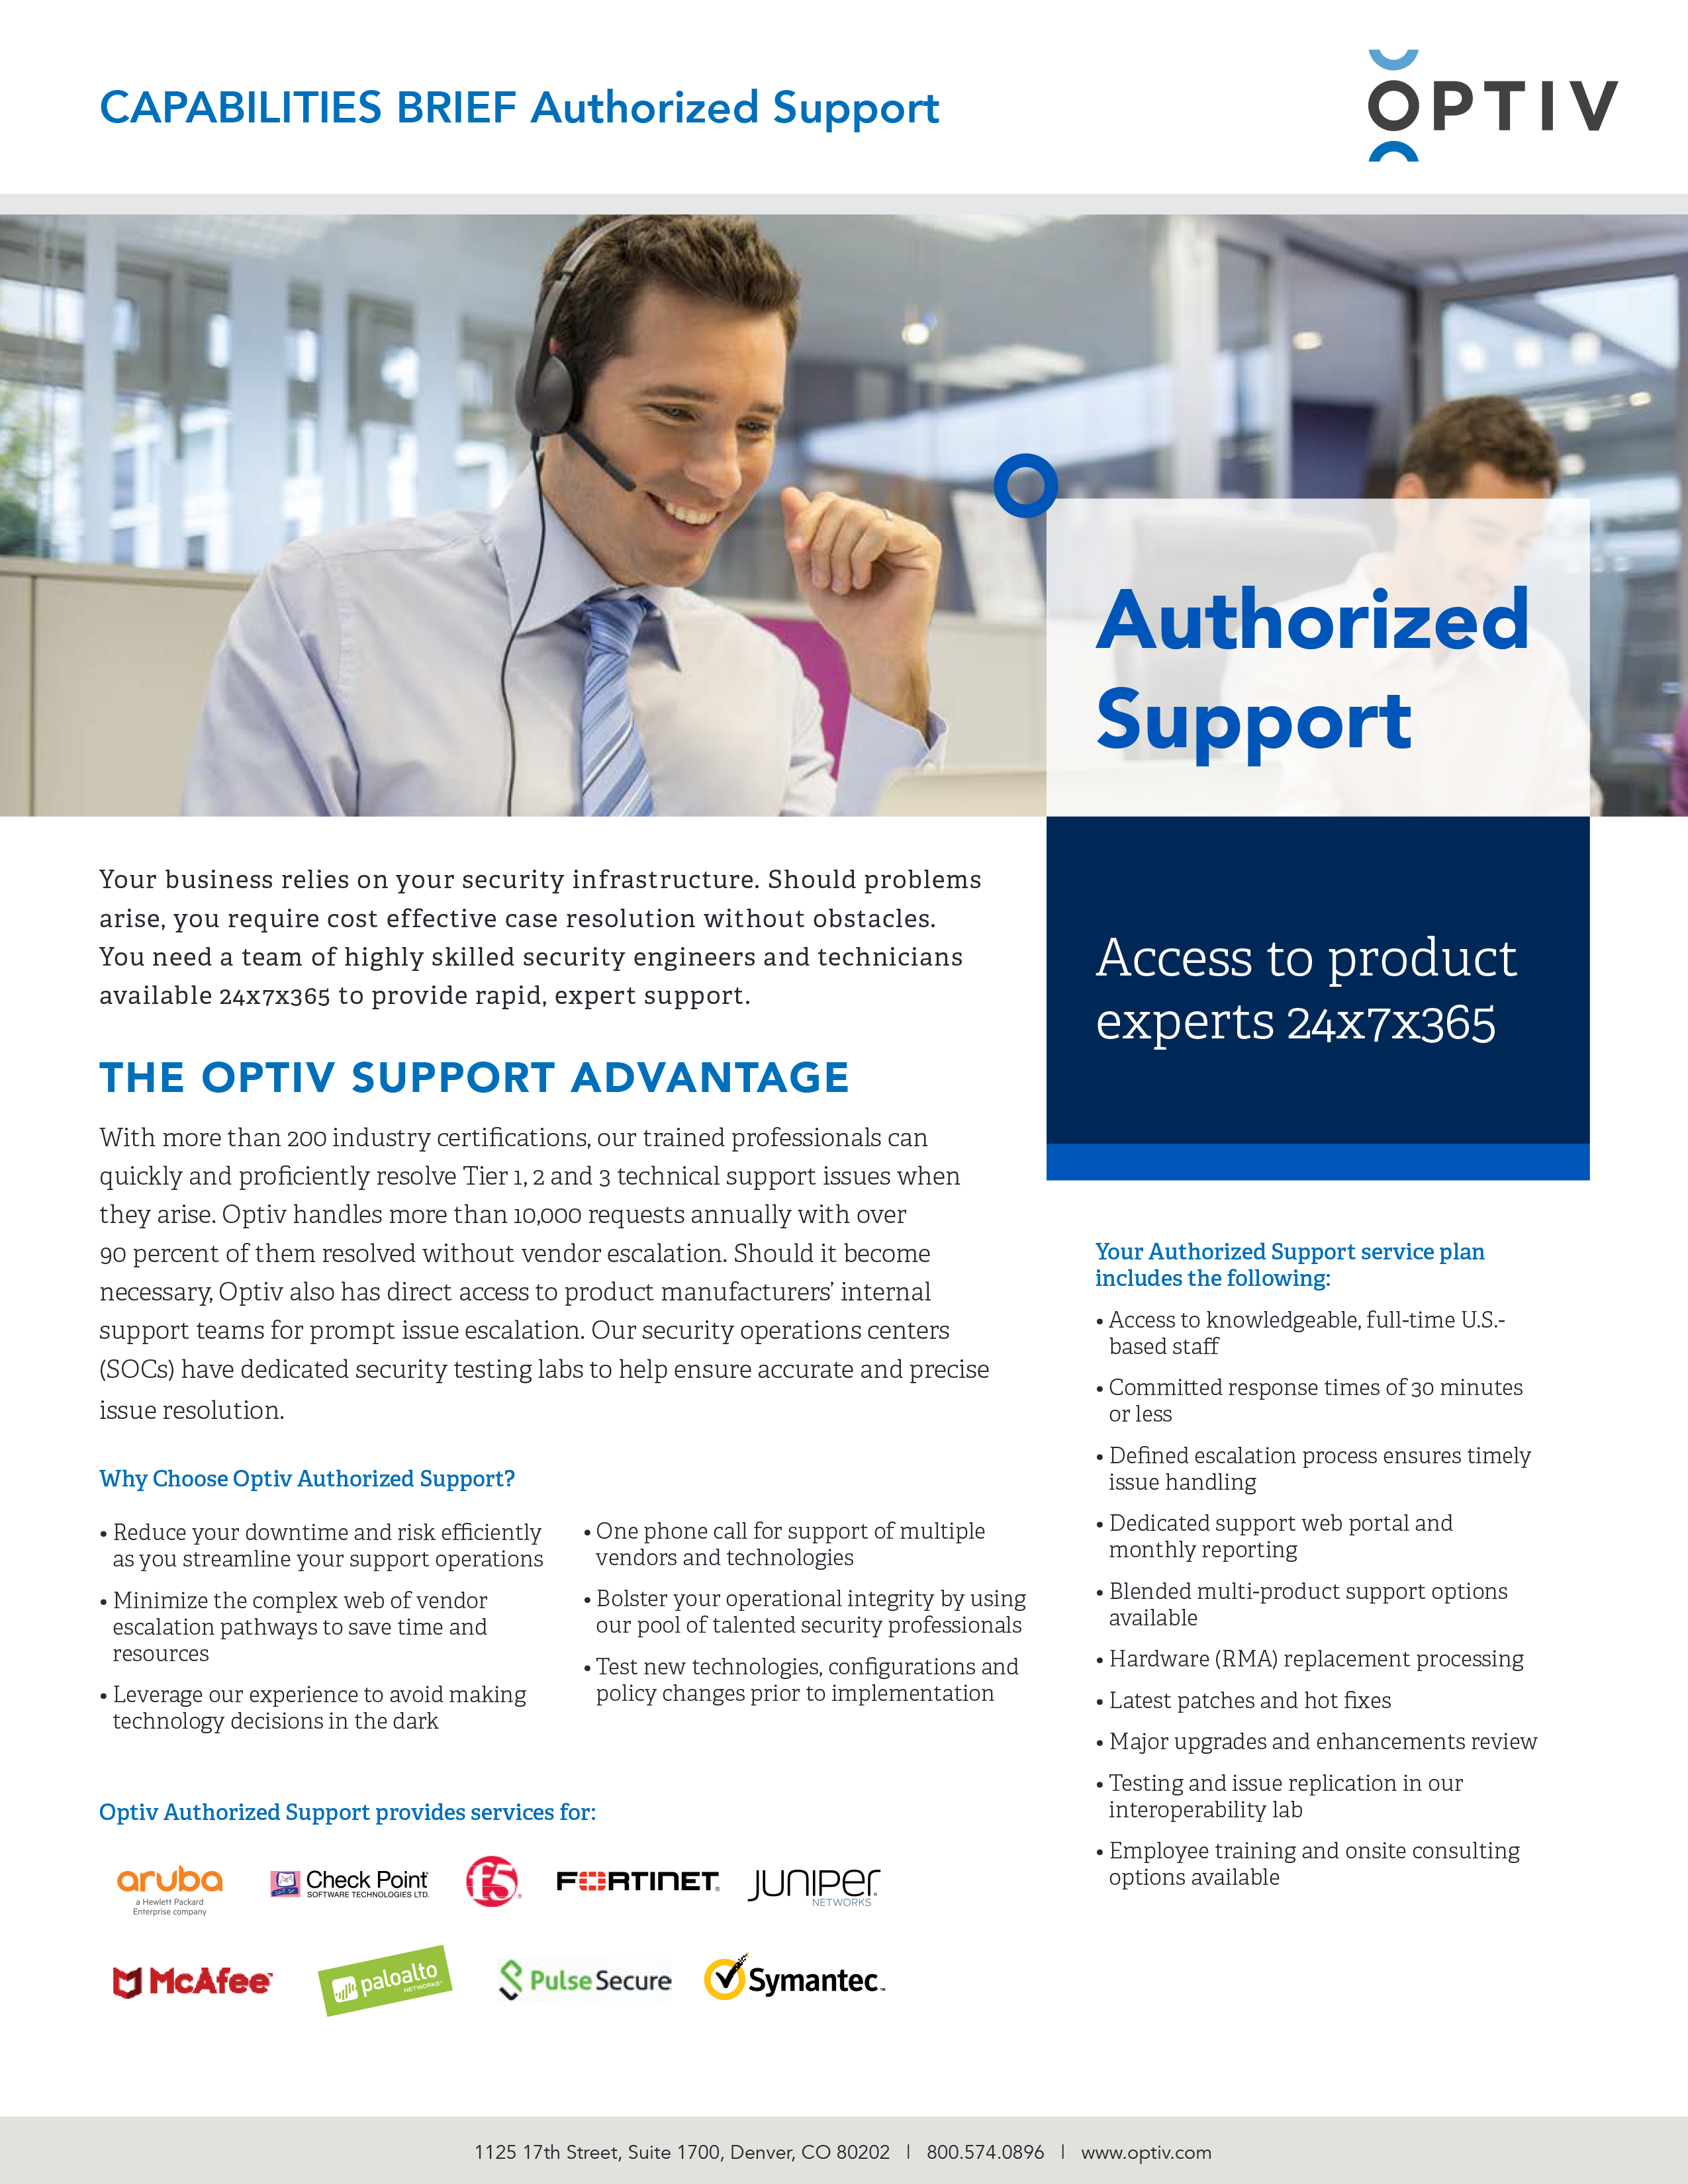 Authorized Support